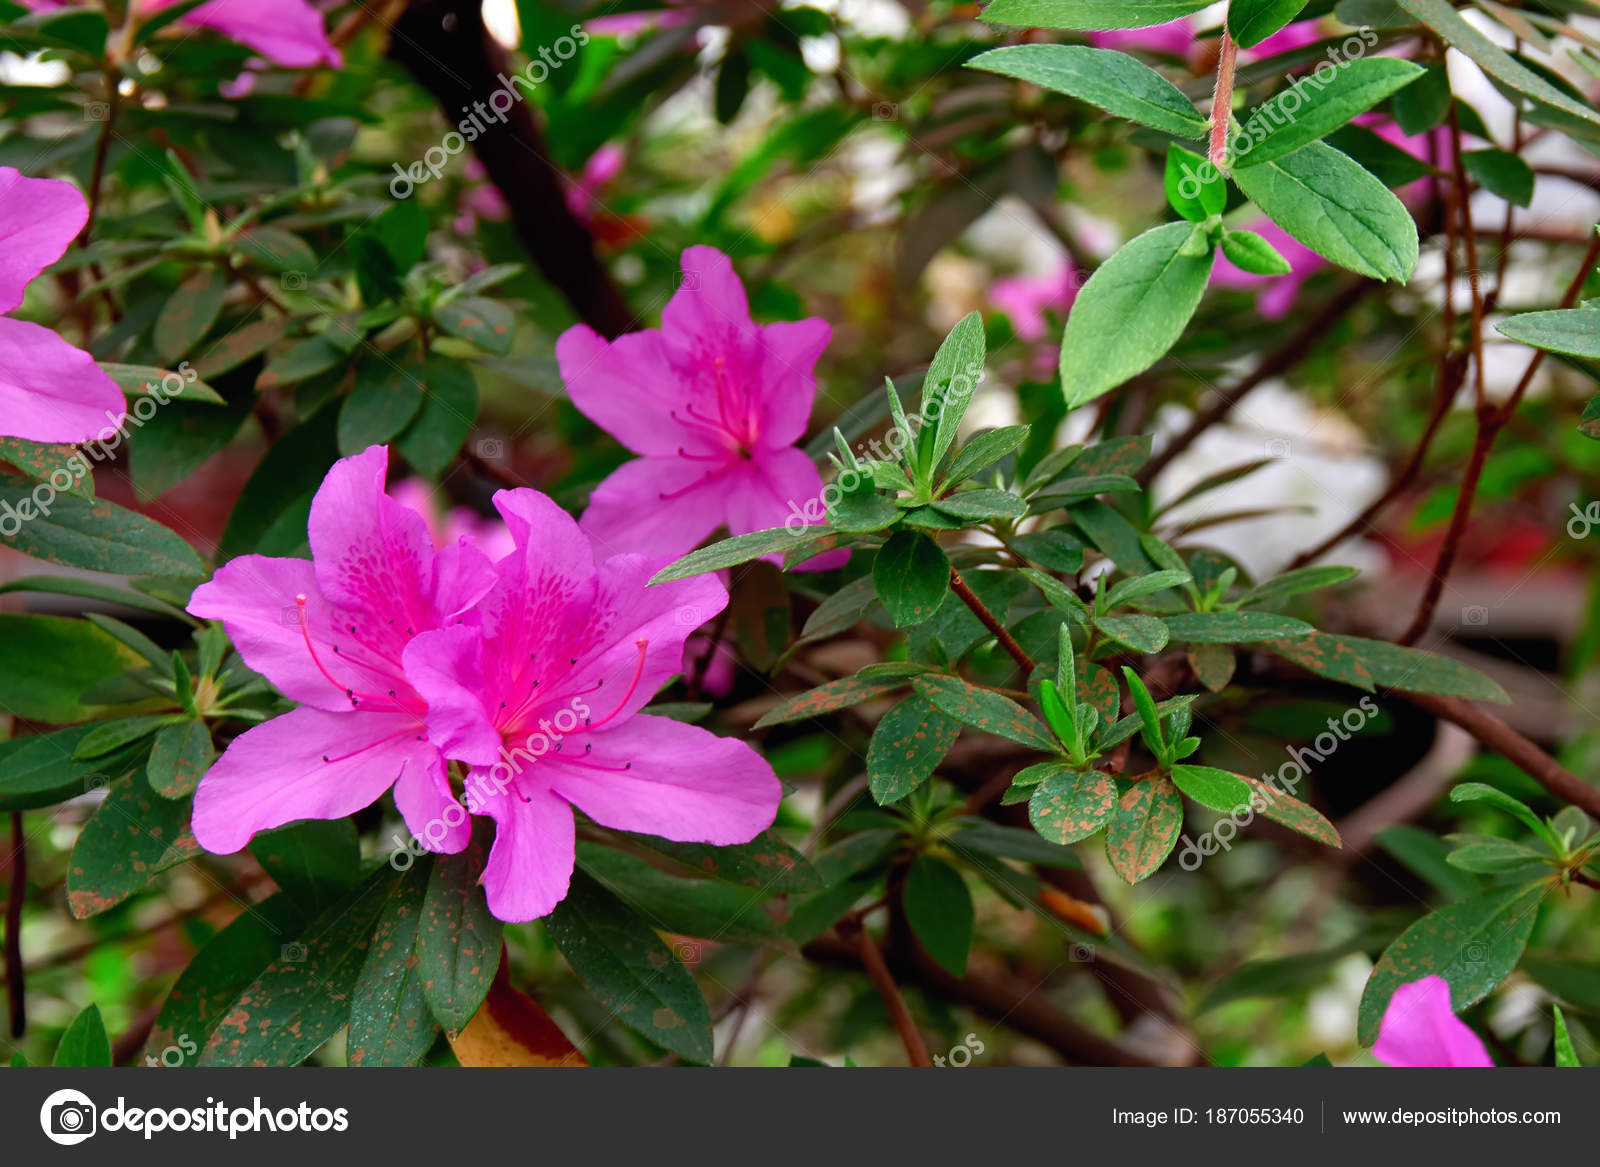 Flowers Azalea In Spring Garden Beautiful Potted Plant With Pink